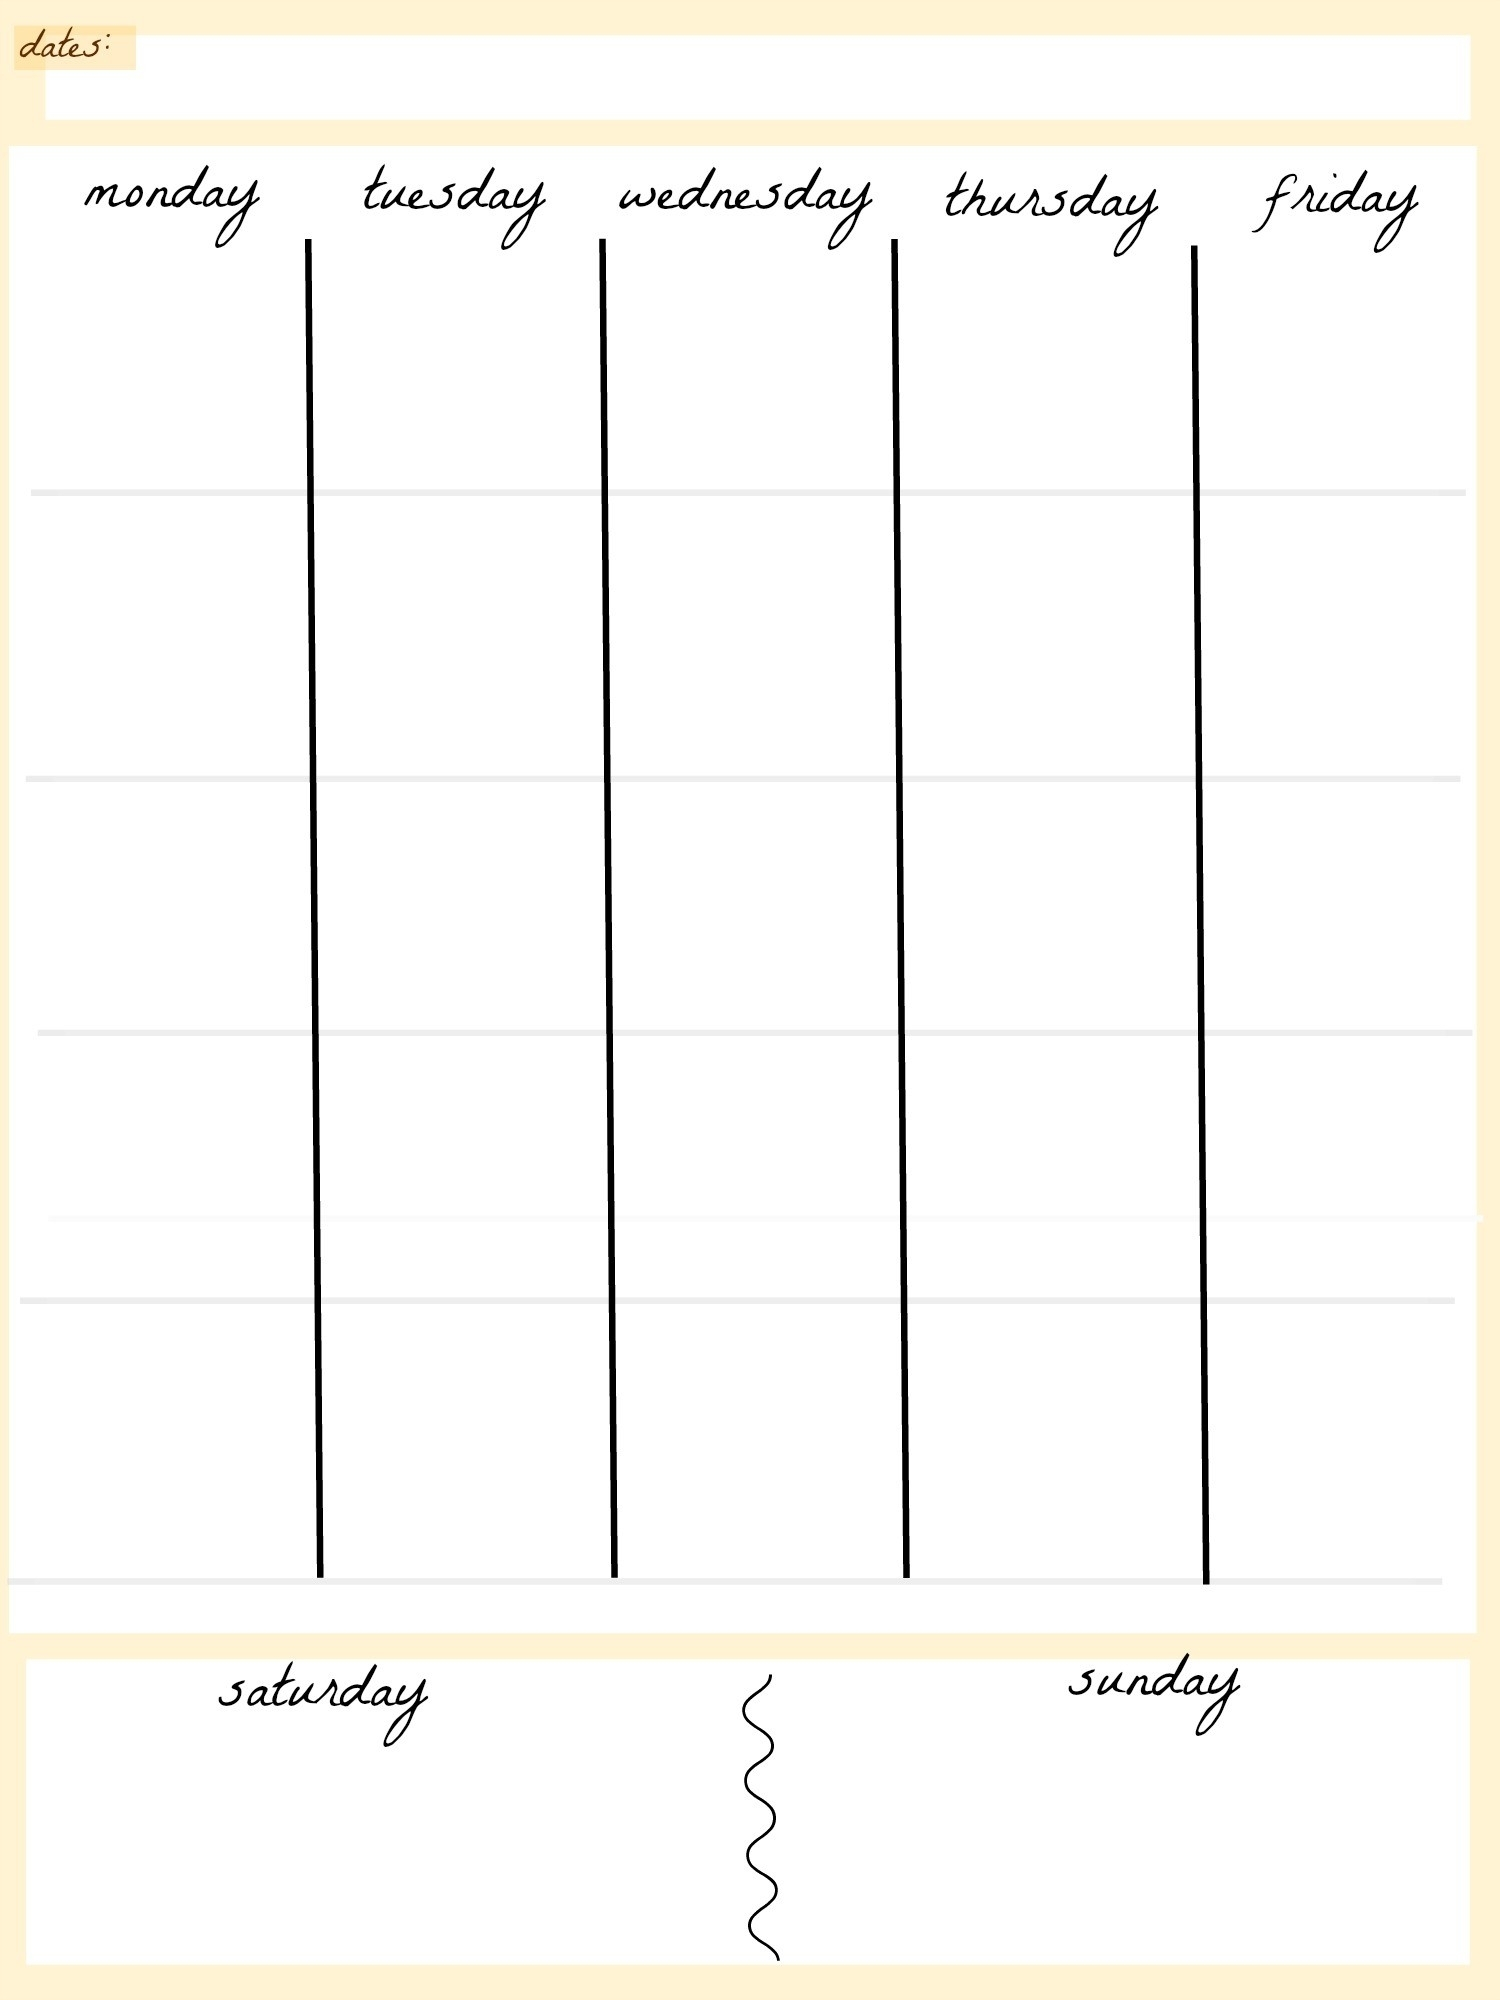 Blank Calendar Template 5 Day Week Weekly Calendar 5 Day Travel Cal1 inside 5 Day Weekly Schedule Template